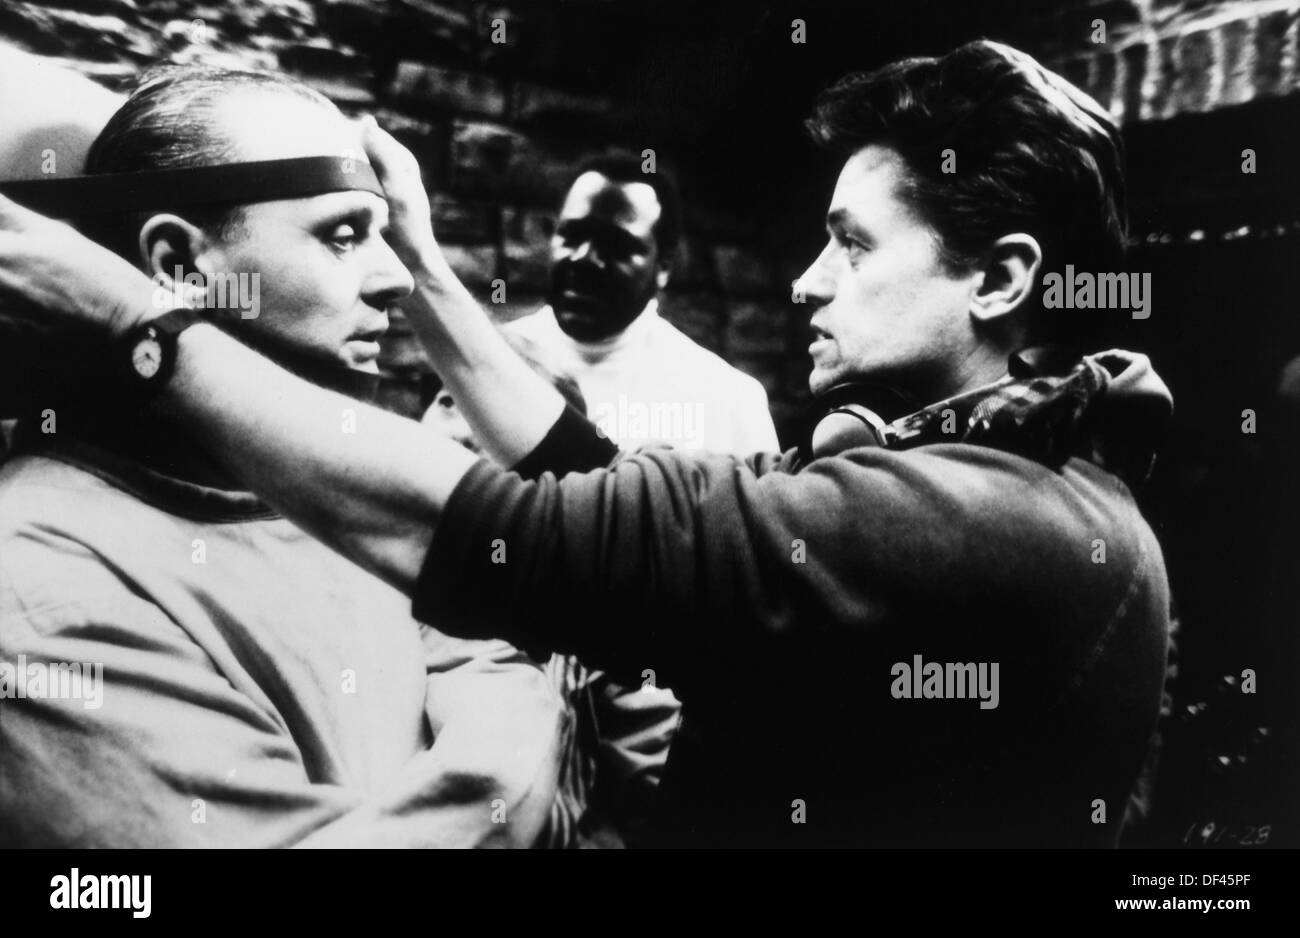 Jonathan Demme Directing Anthony Hopkins On-Set of the Film, 'The Silence of the Lambs', 1991 - Stock Image